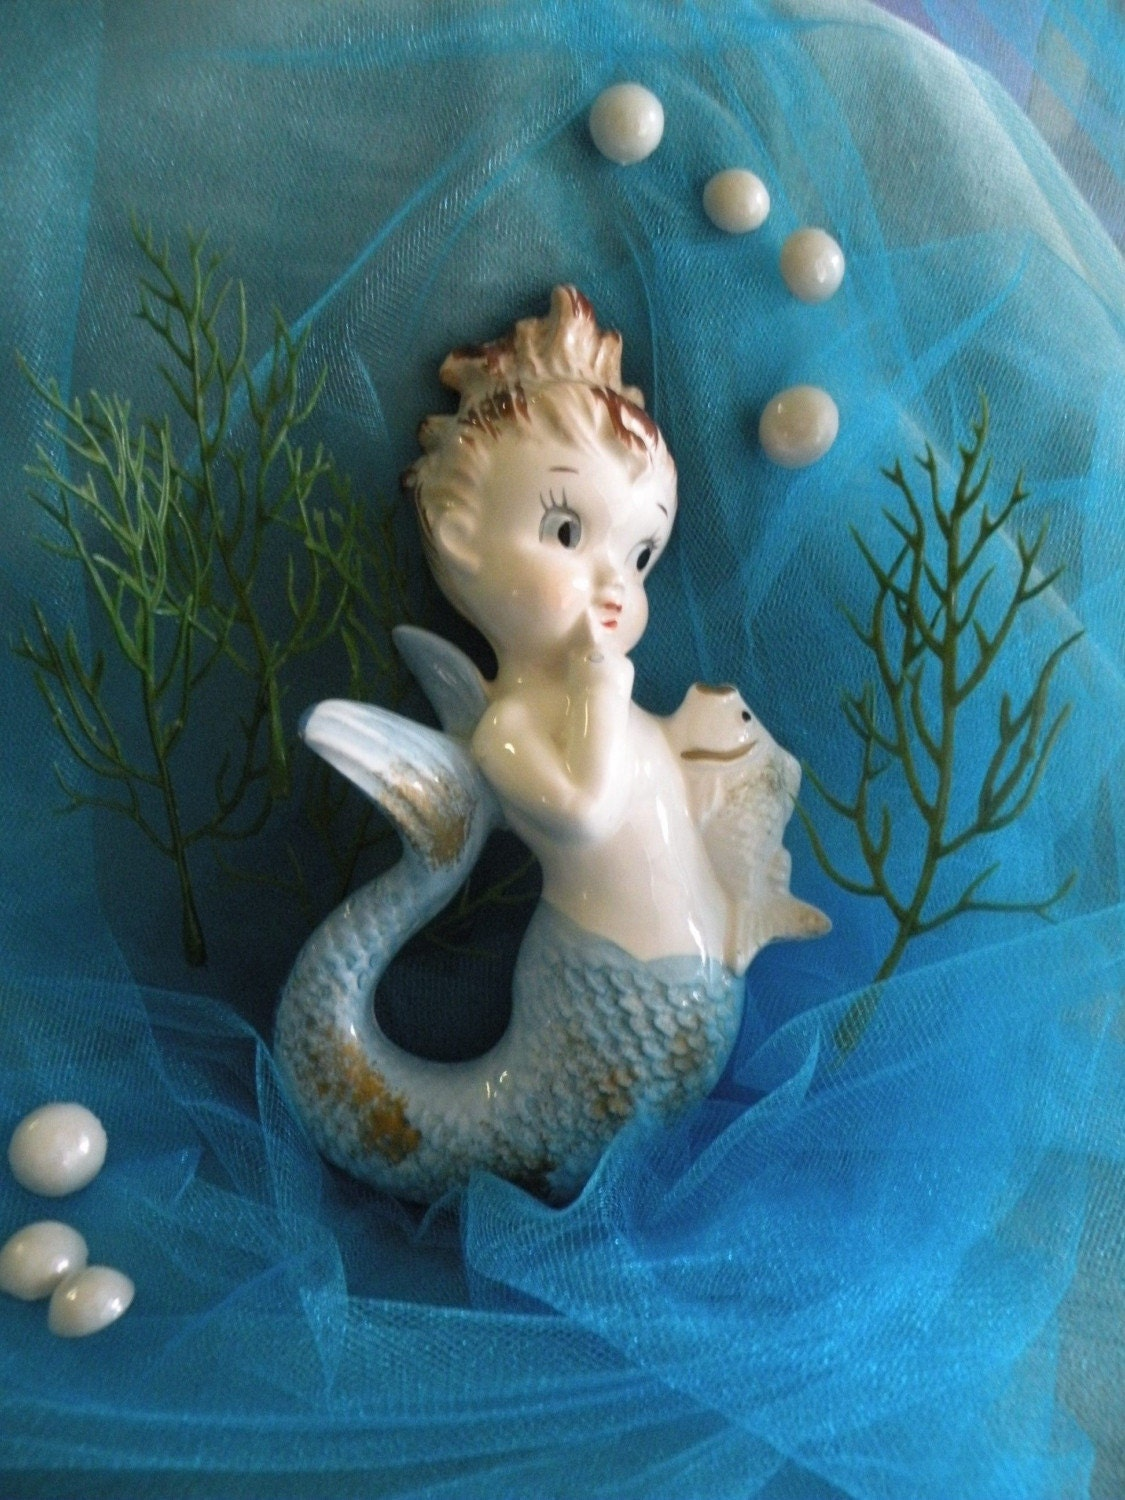 VINTAGE MERMAID FIGURINE WITH 7 PEARLIZED BUBBLES By